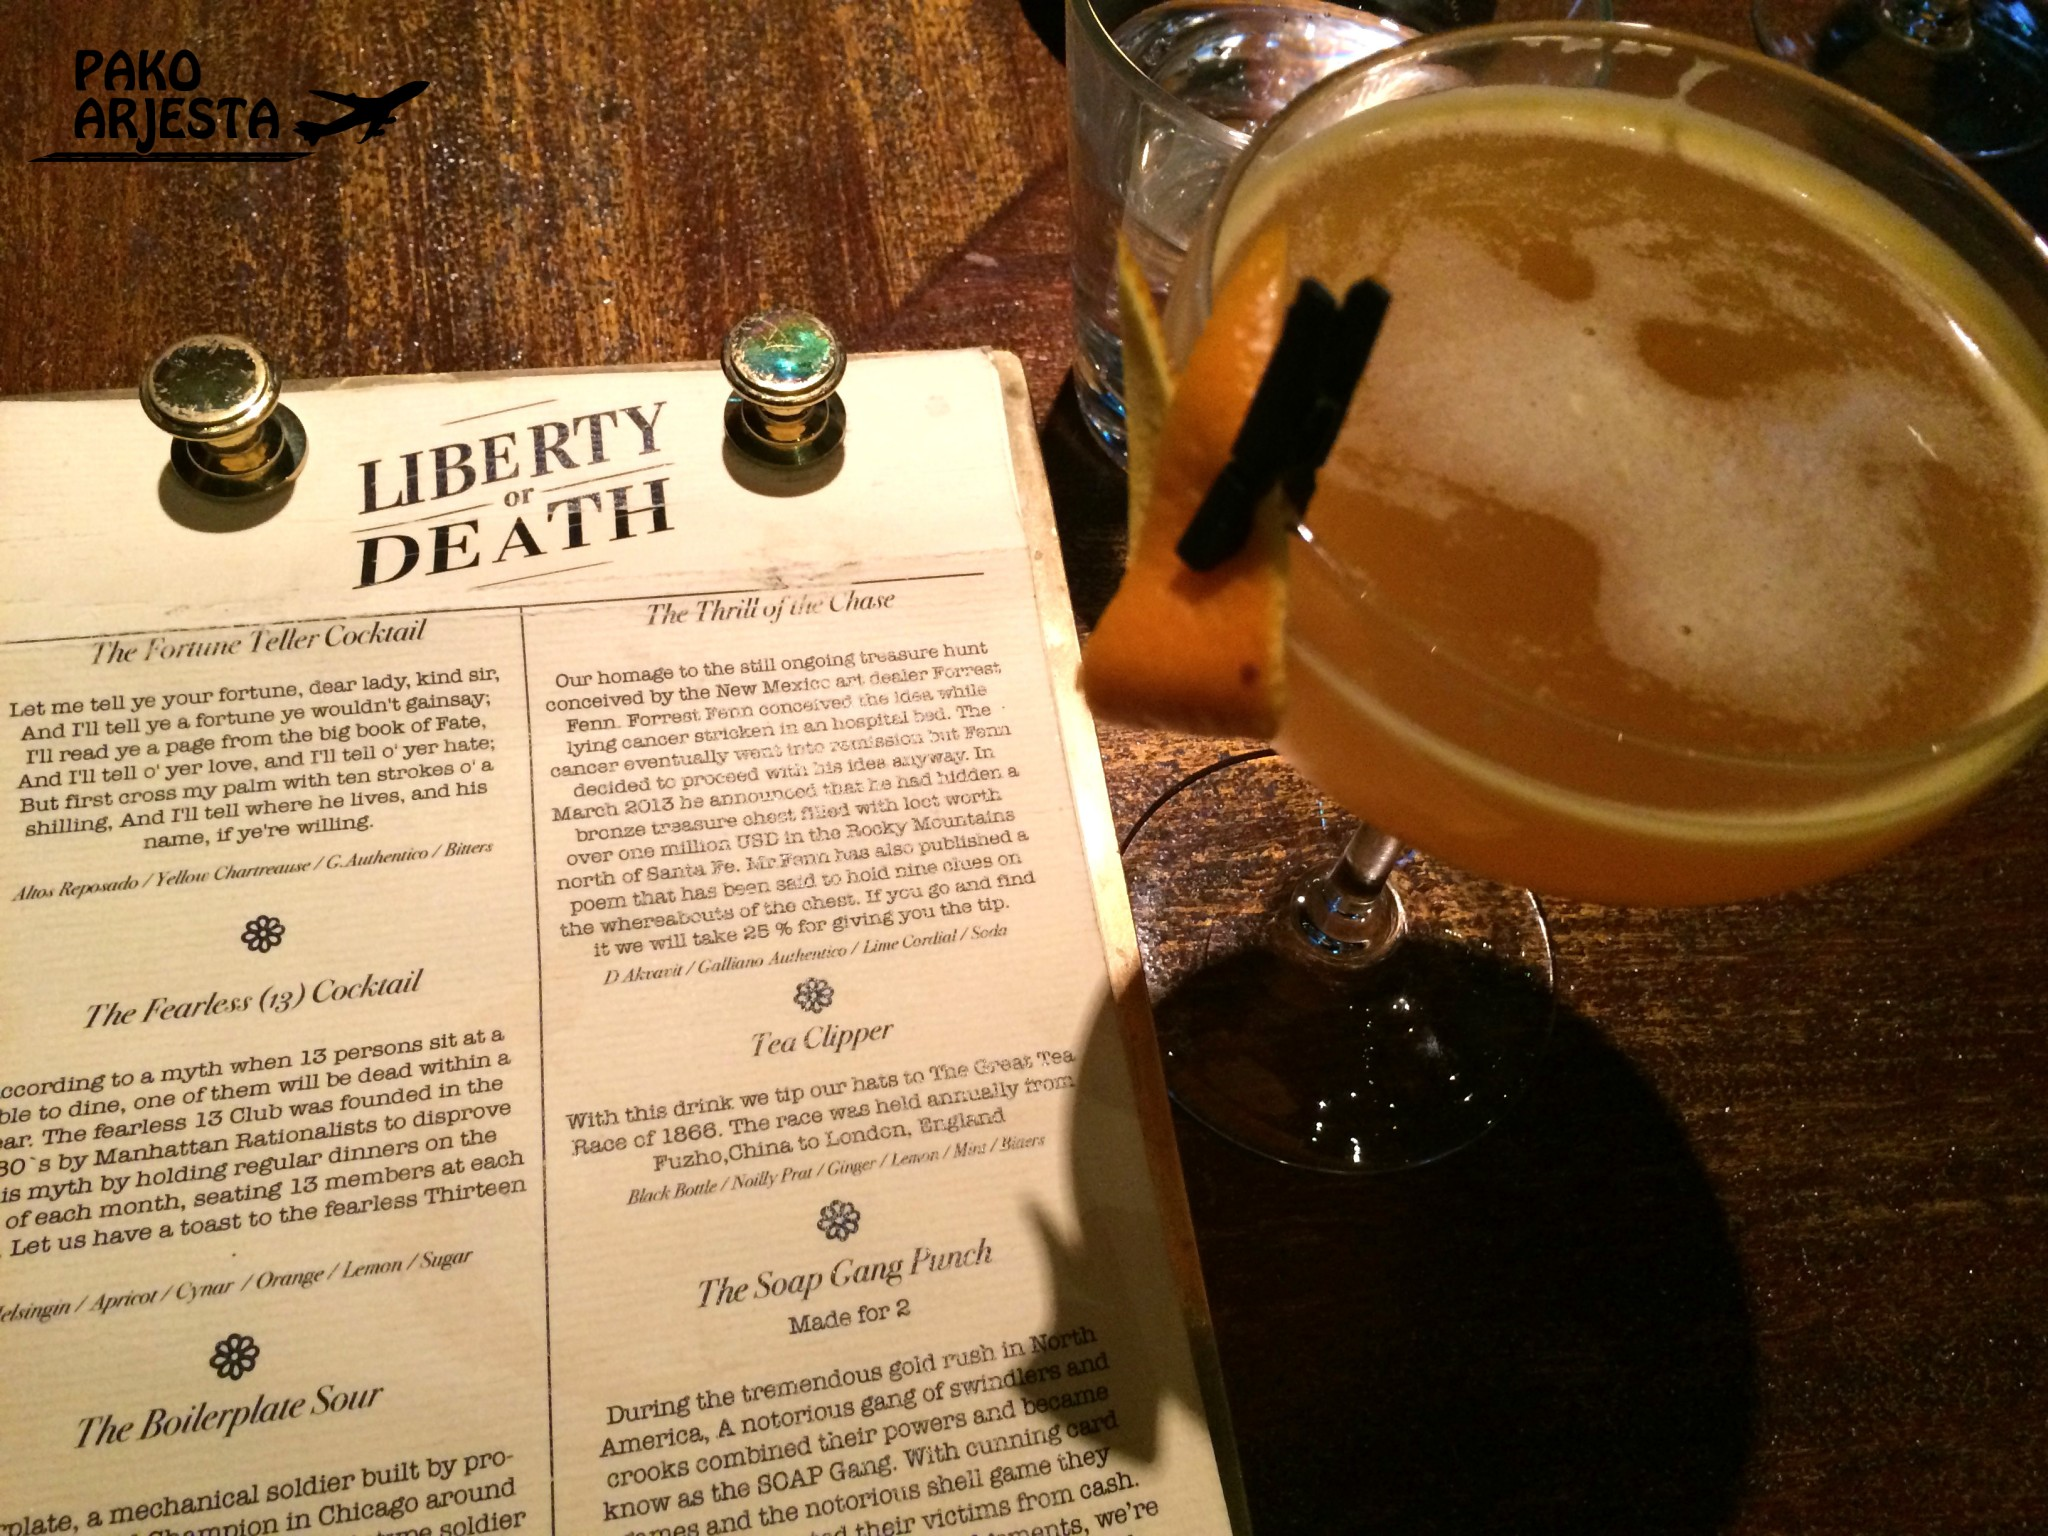 Liberty or Death lista